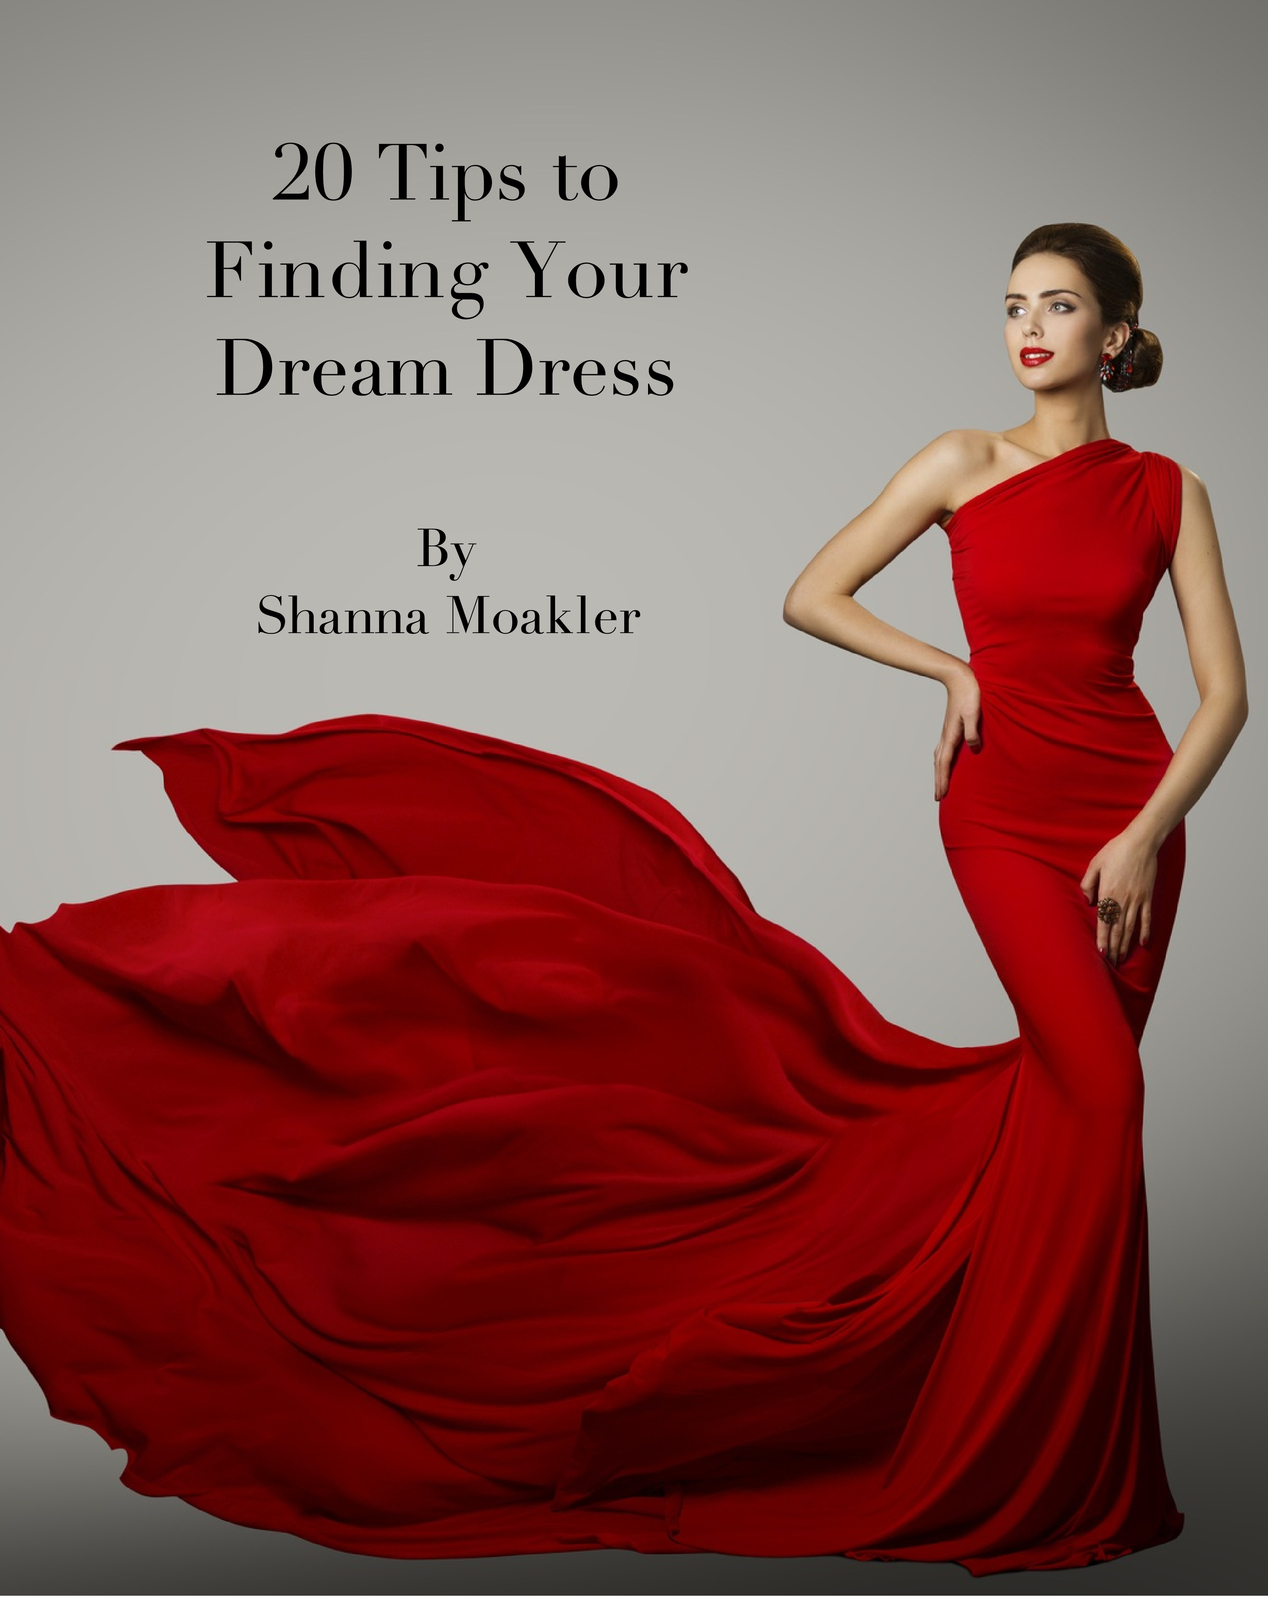 20 Tips To Finding Your Dream Dress Ebook By Shanna Moakler Blurb